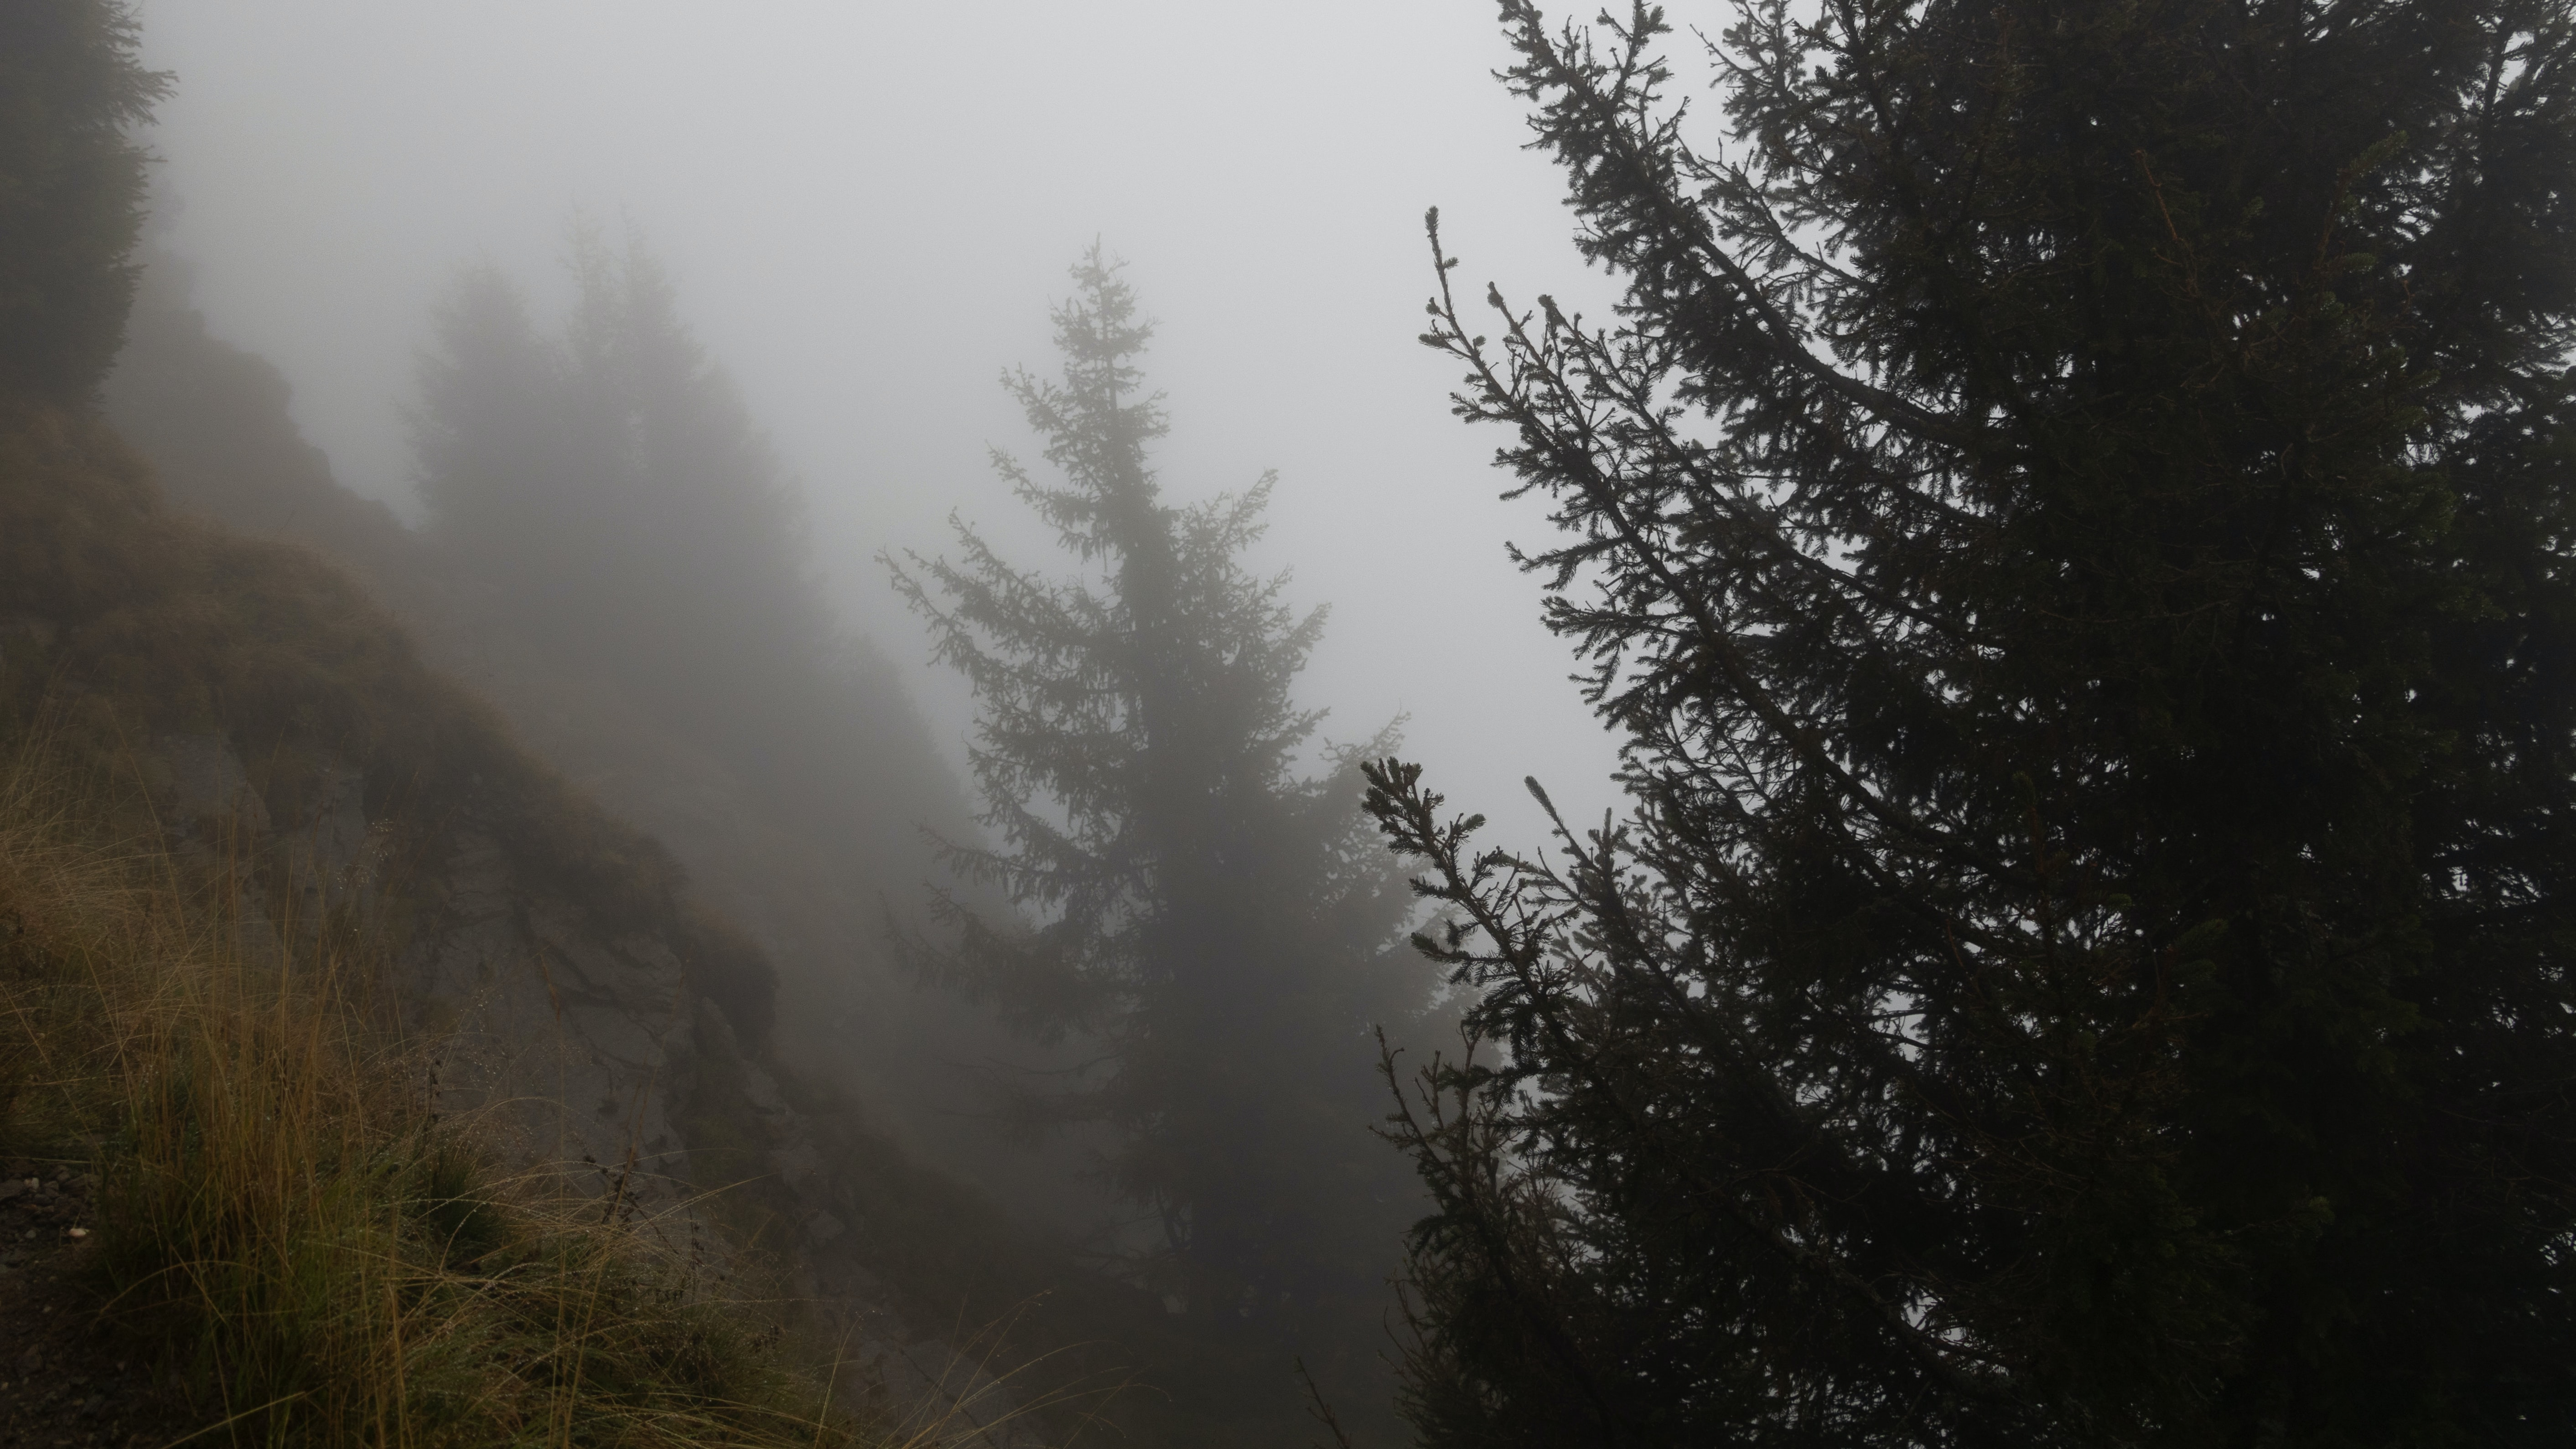 pine trees surrounded with fogs